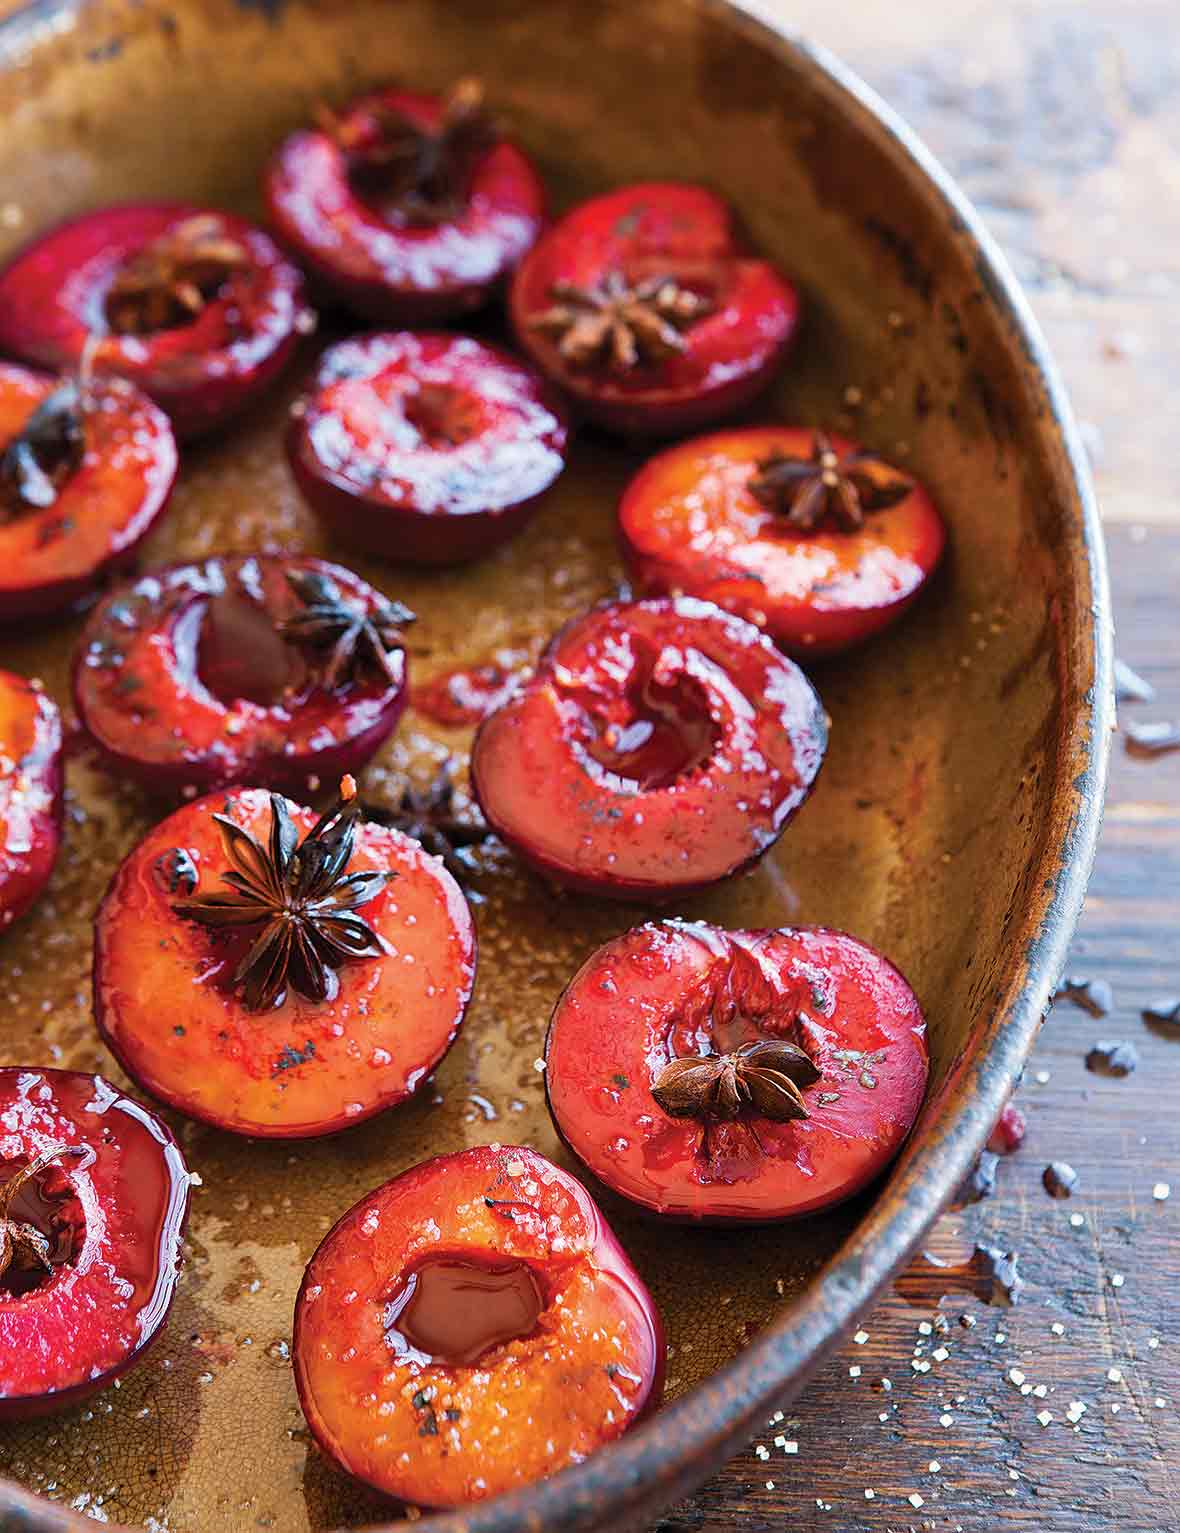 An oval dish filled with roasted plums, topped with star anise.